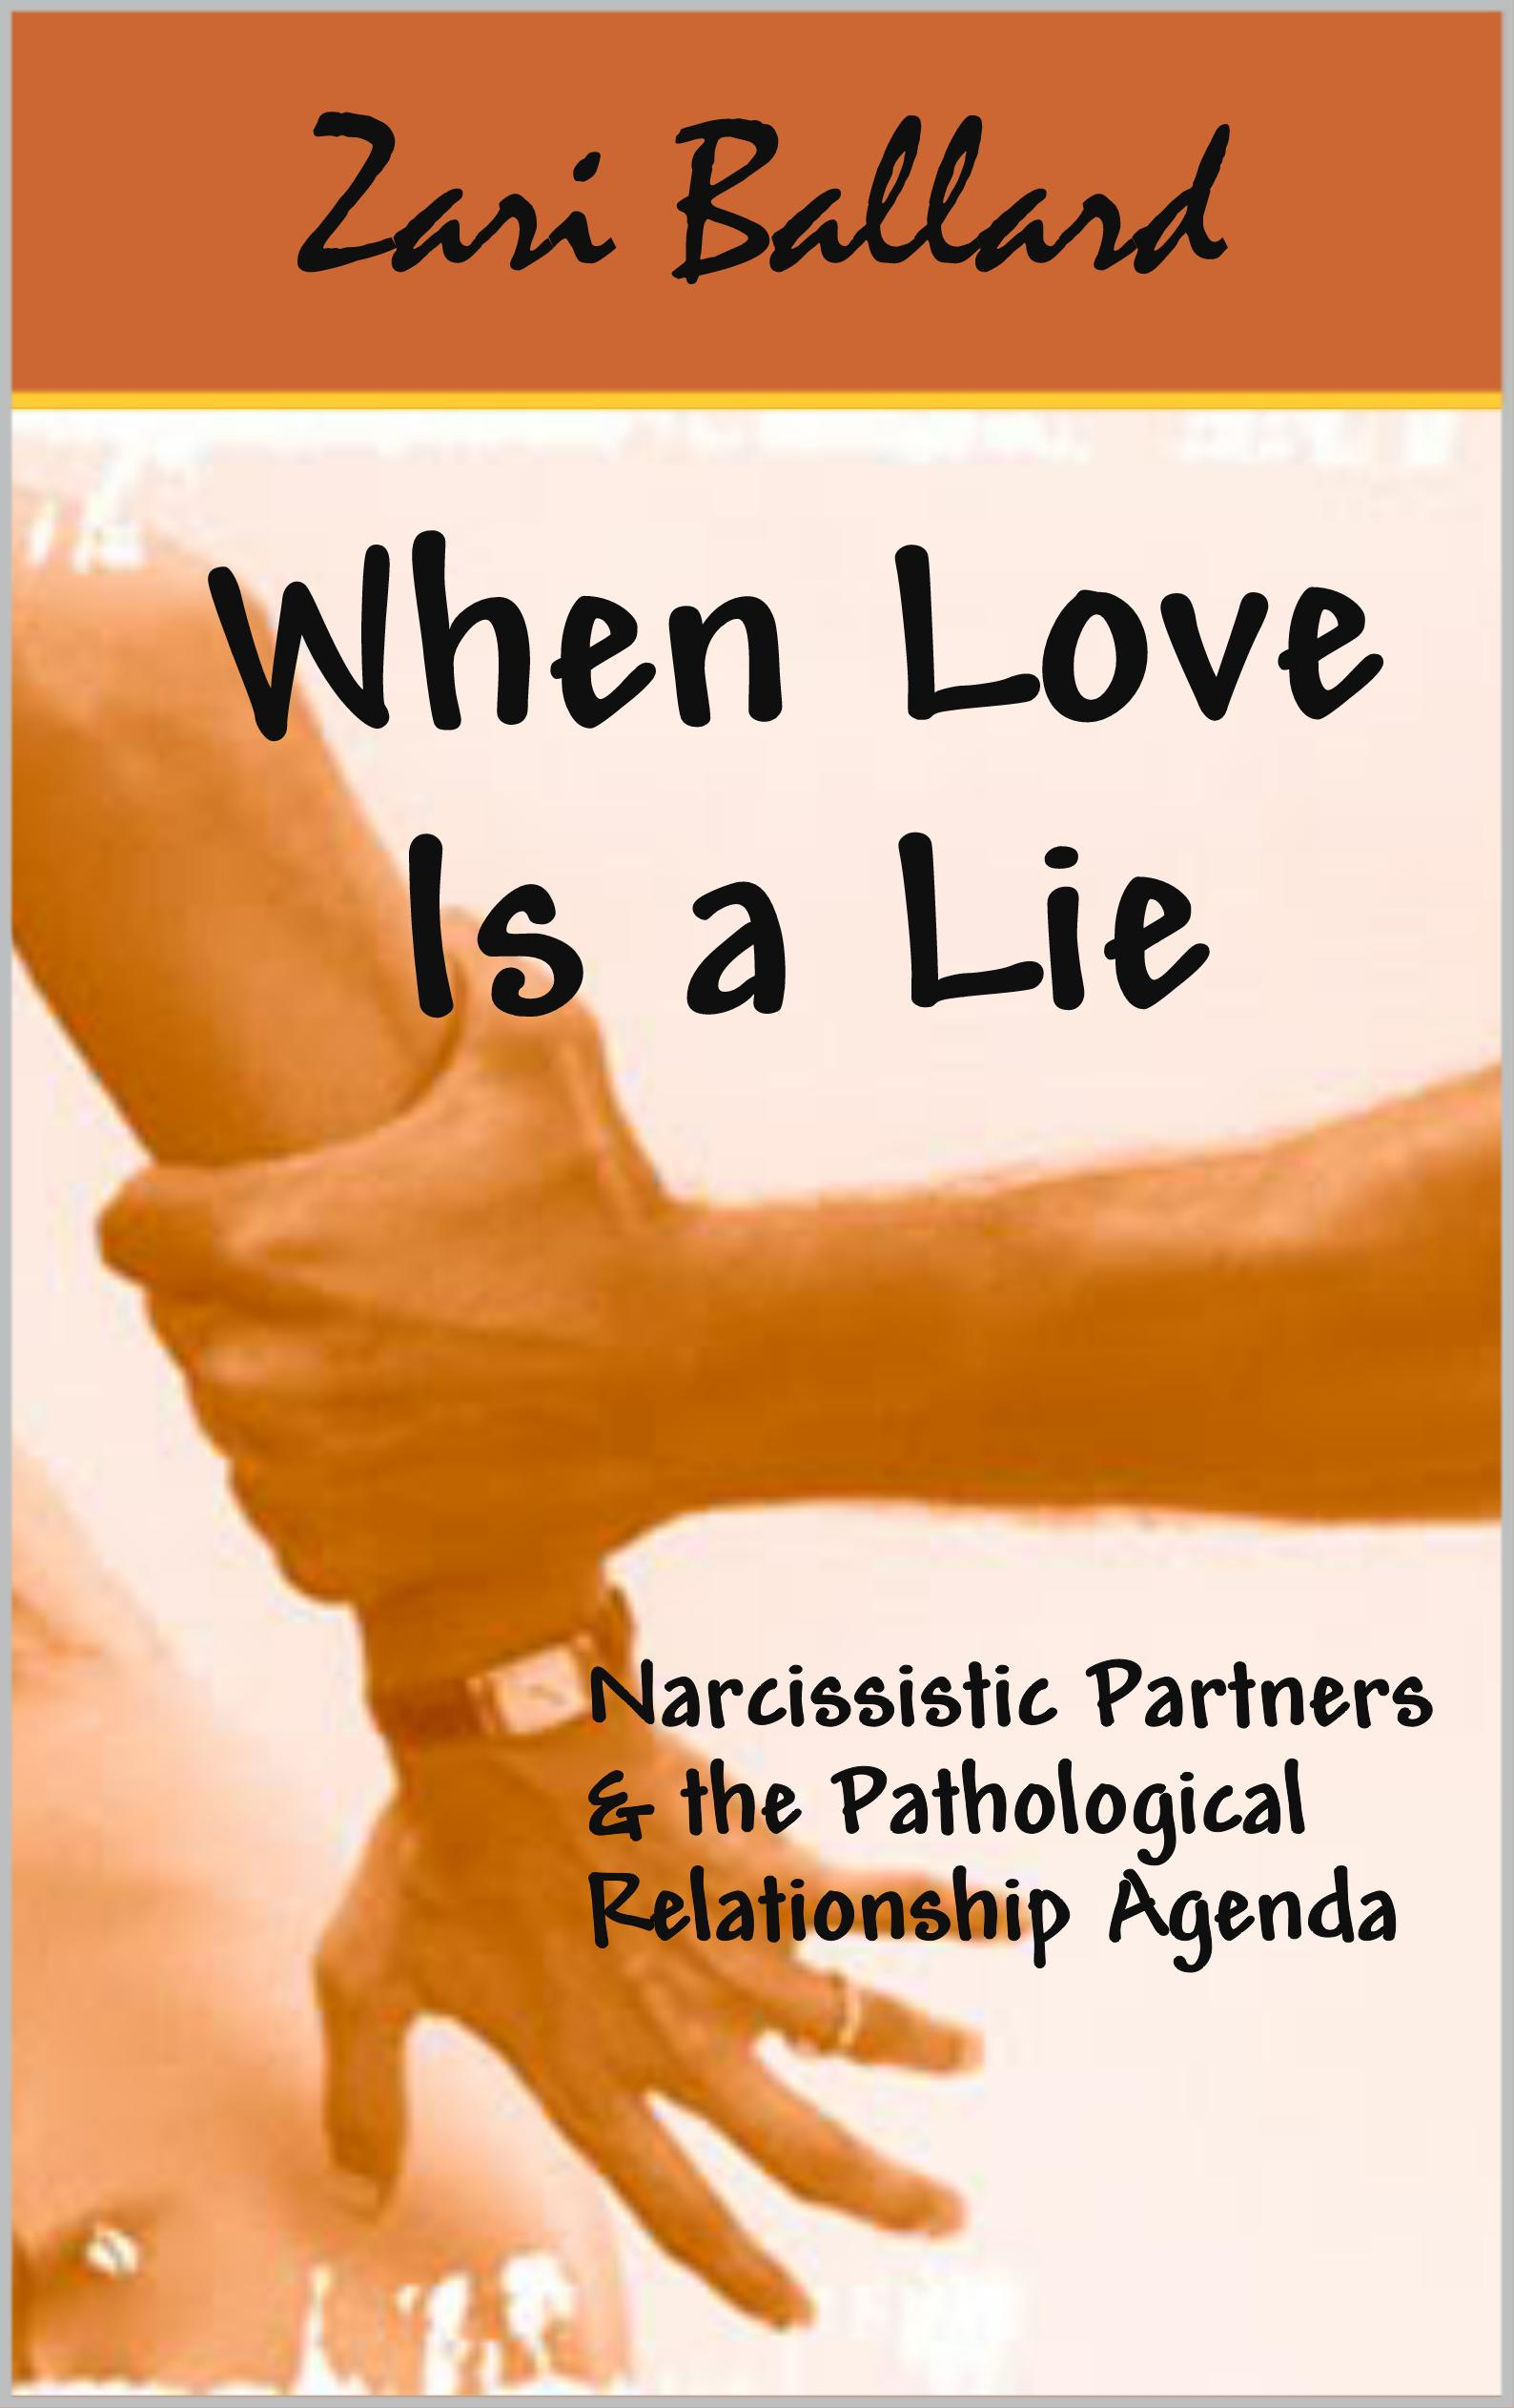 What is a narcissistic partner